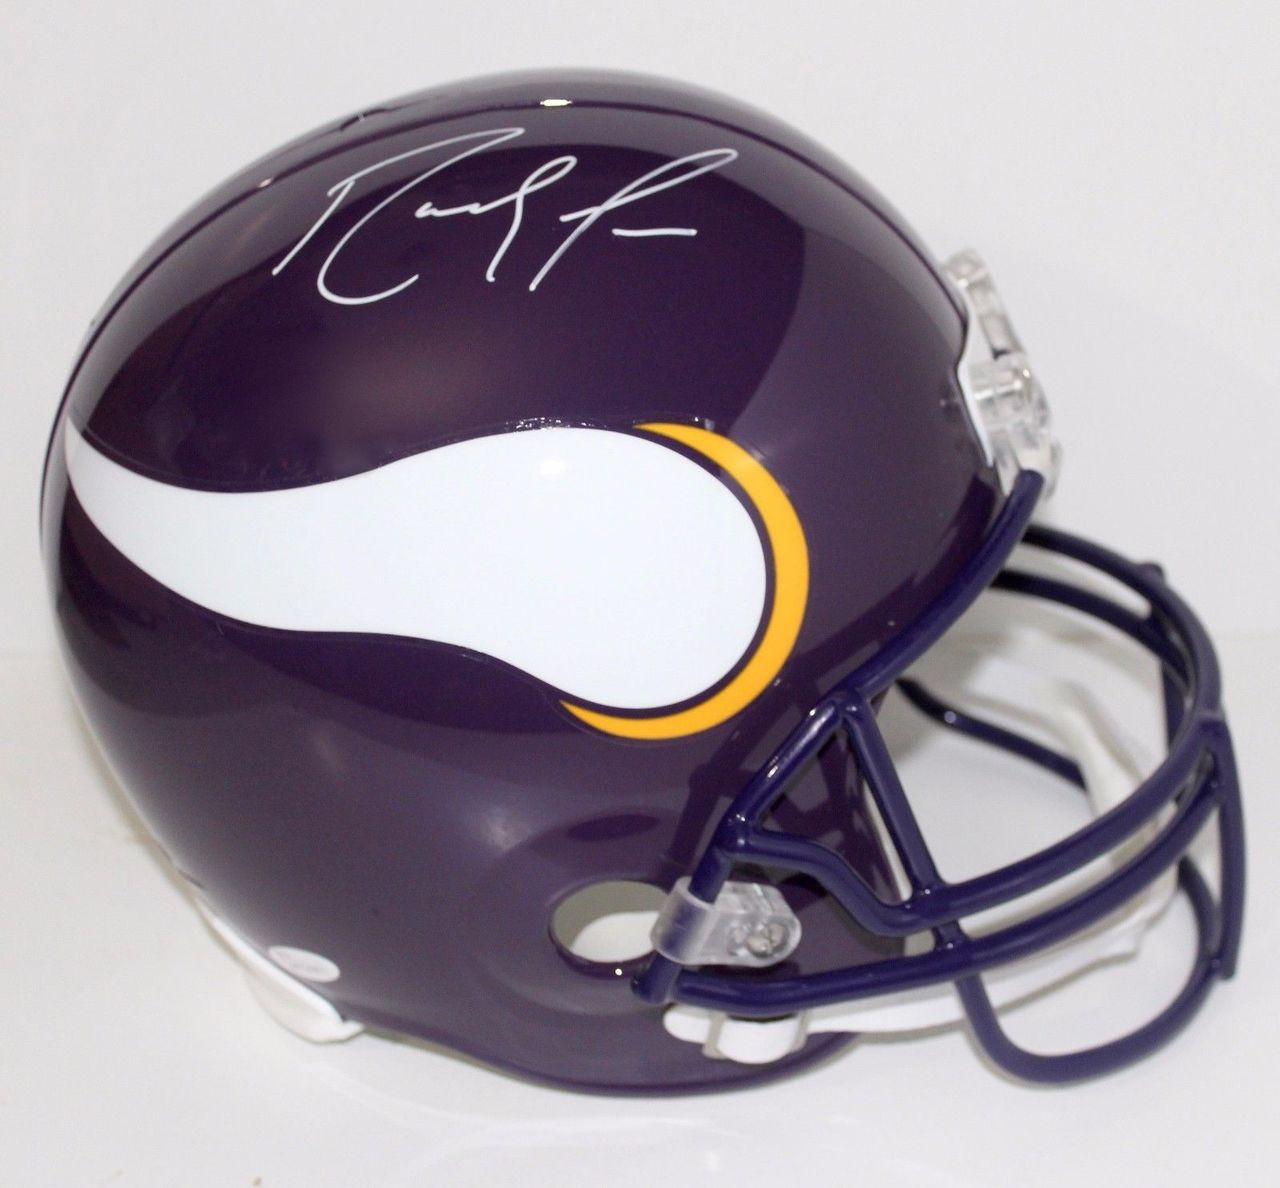 separation shoes 67bcb 59816 Randy Moss Minnesota Vikings Autographed Full Size Replica Helmet